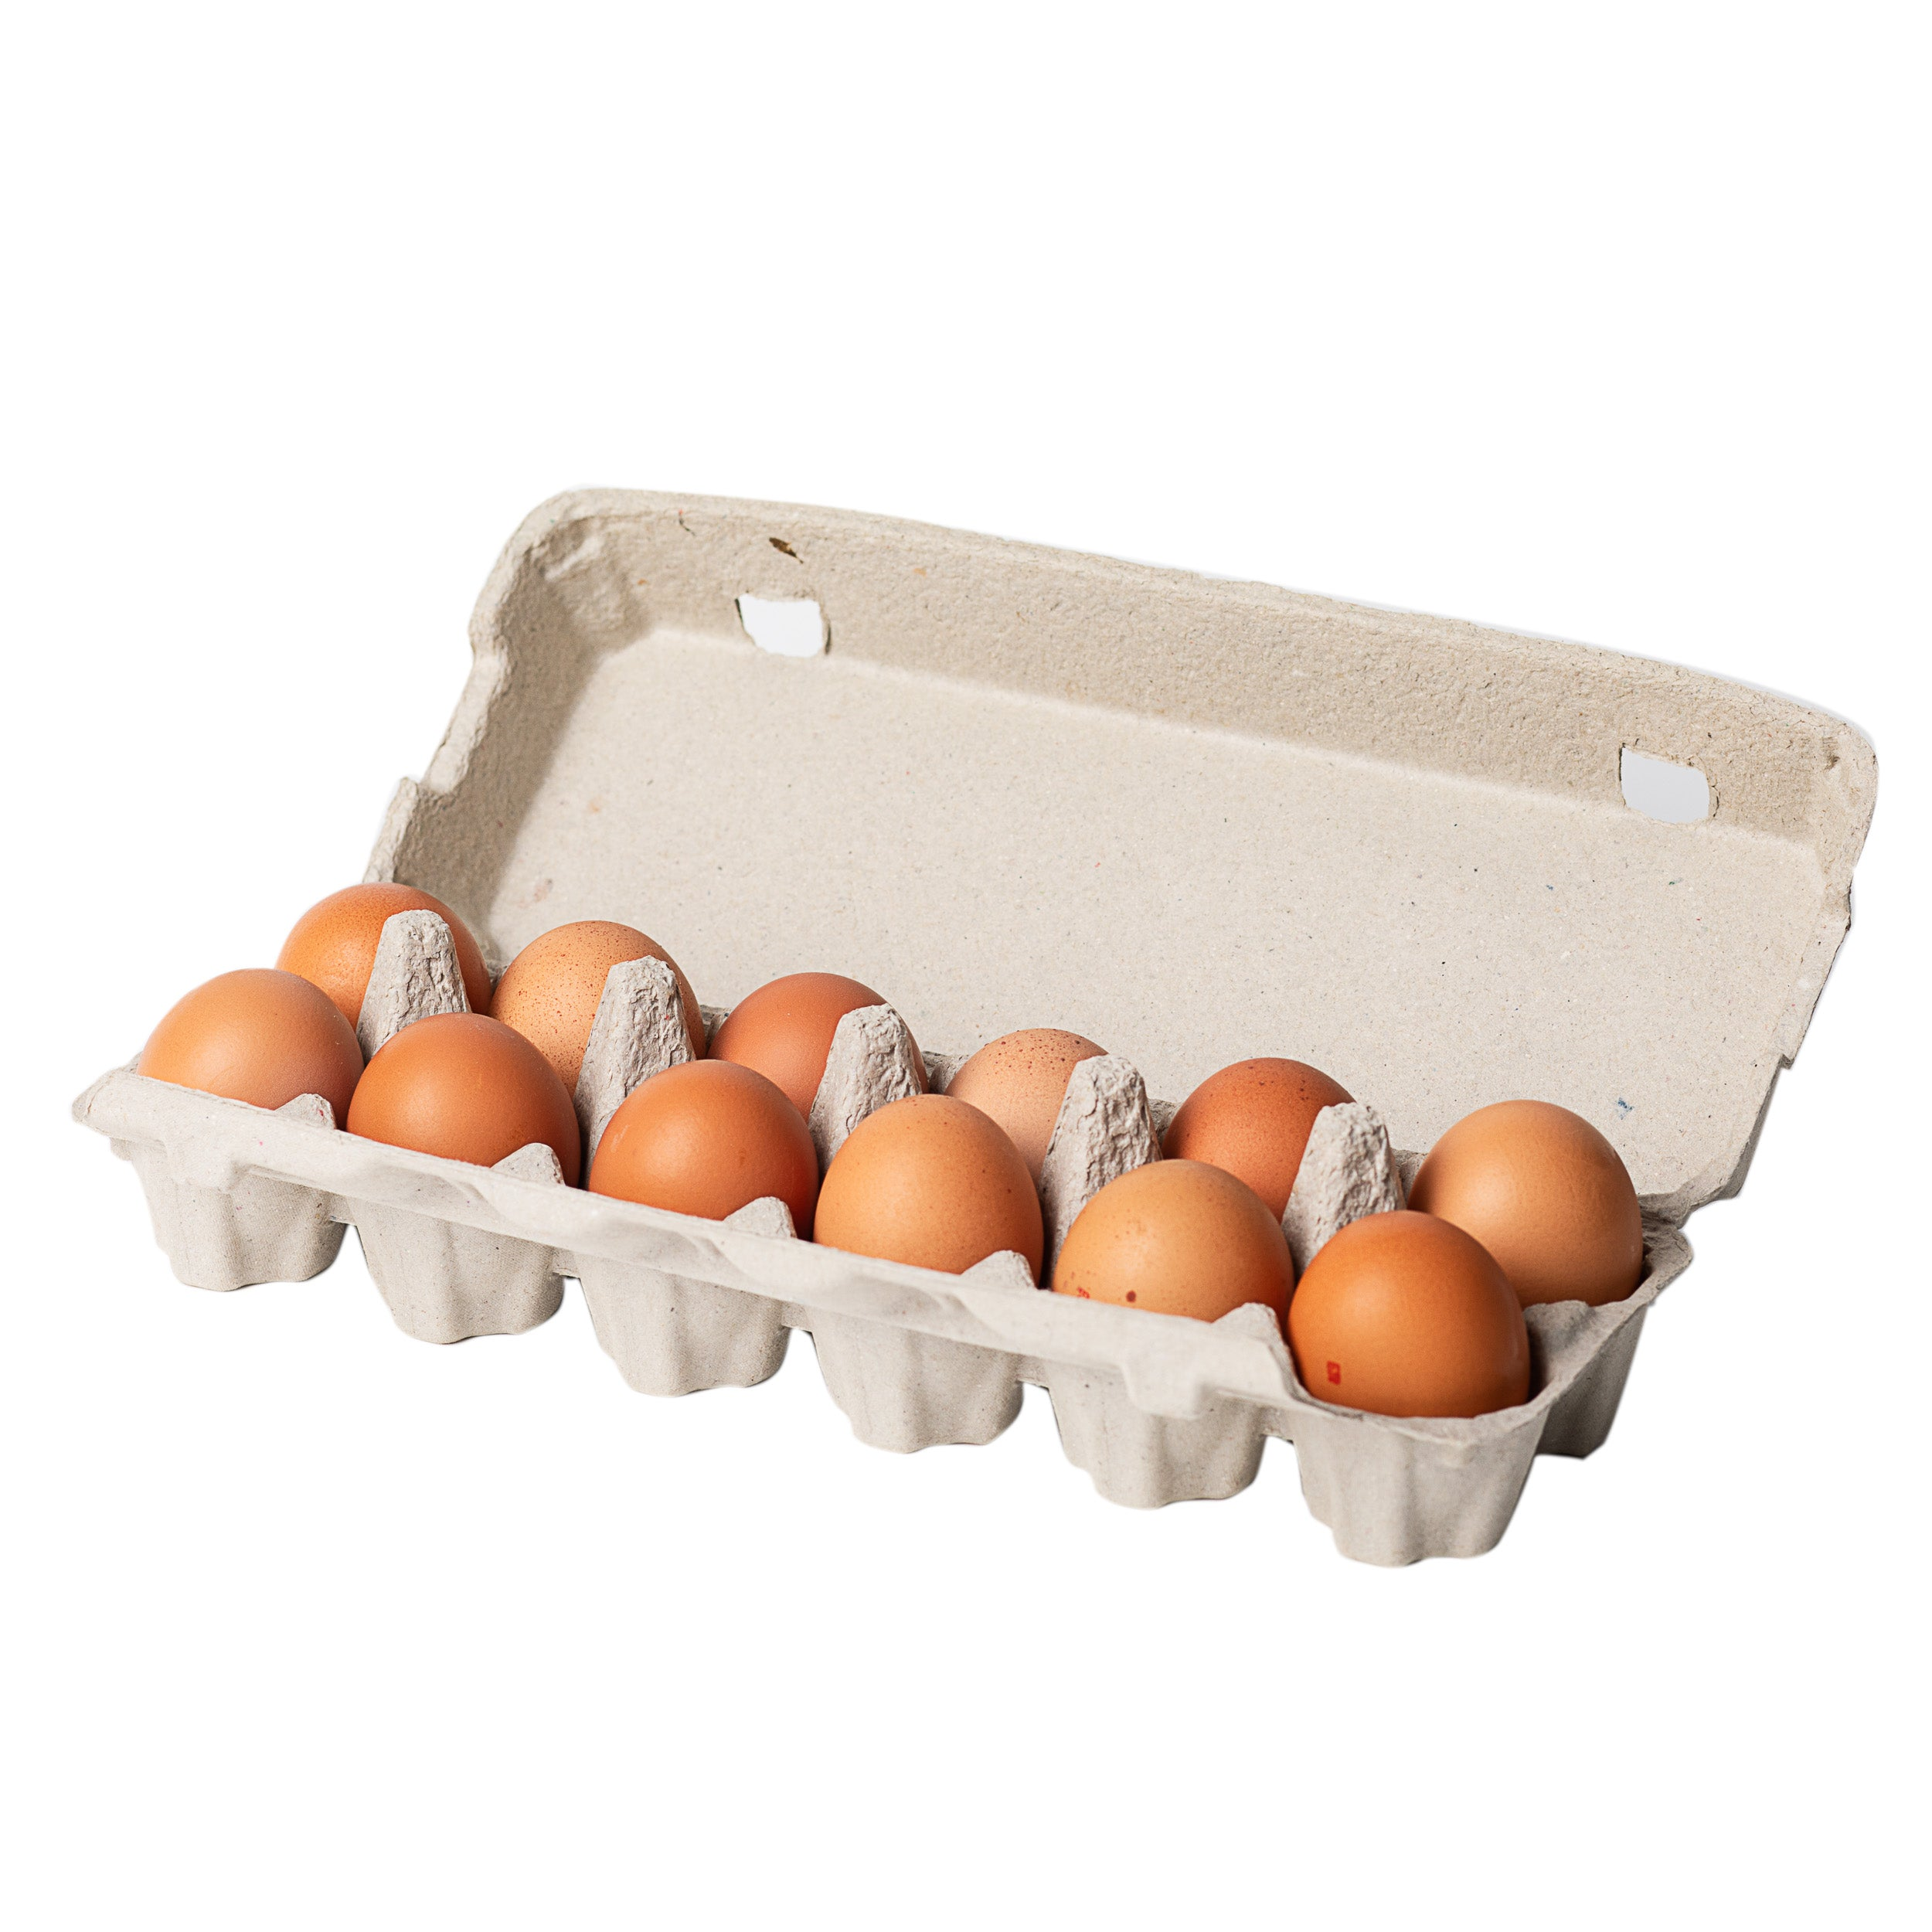 Happy Chook Eggs (1 dozen)